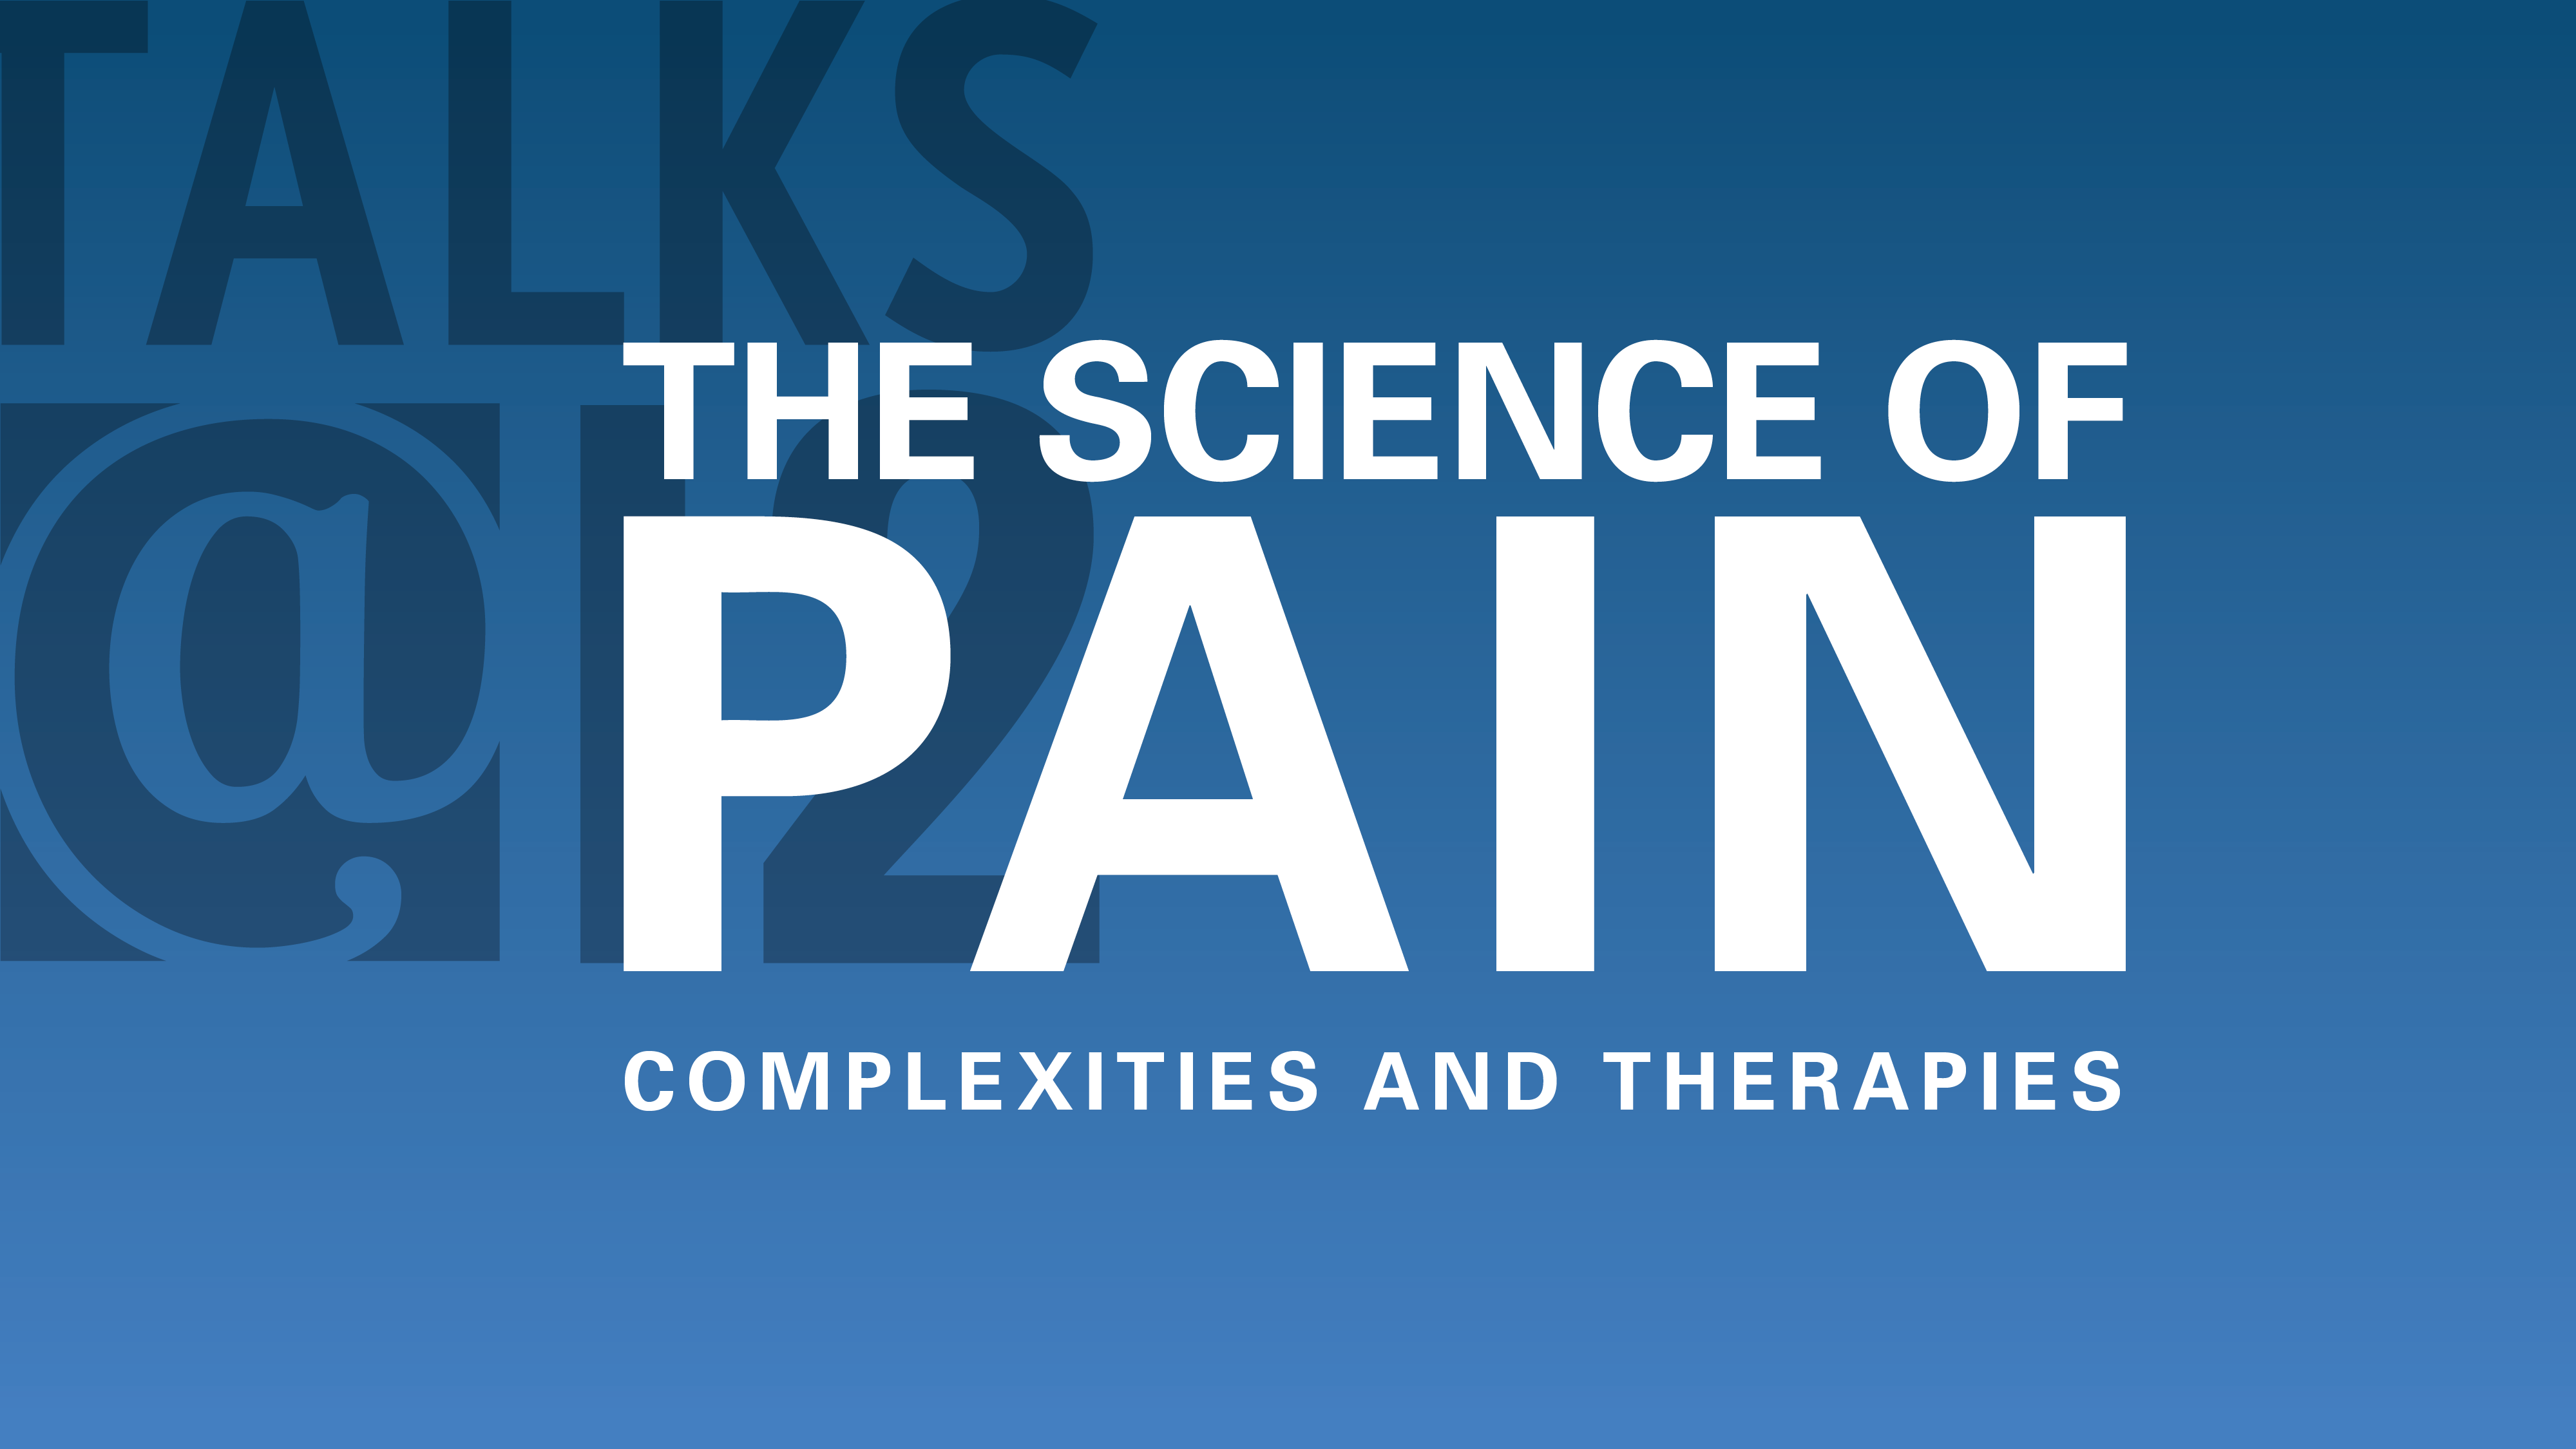 The Science of Pain: Complexities and therapies